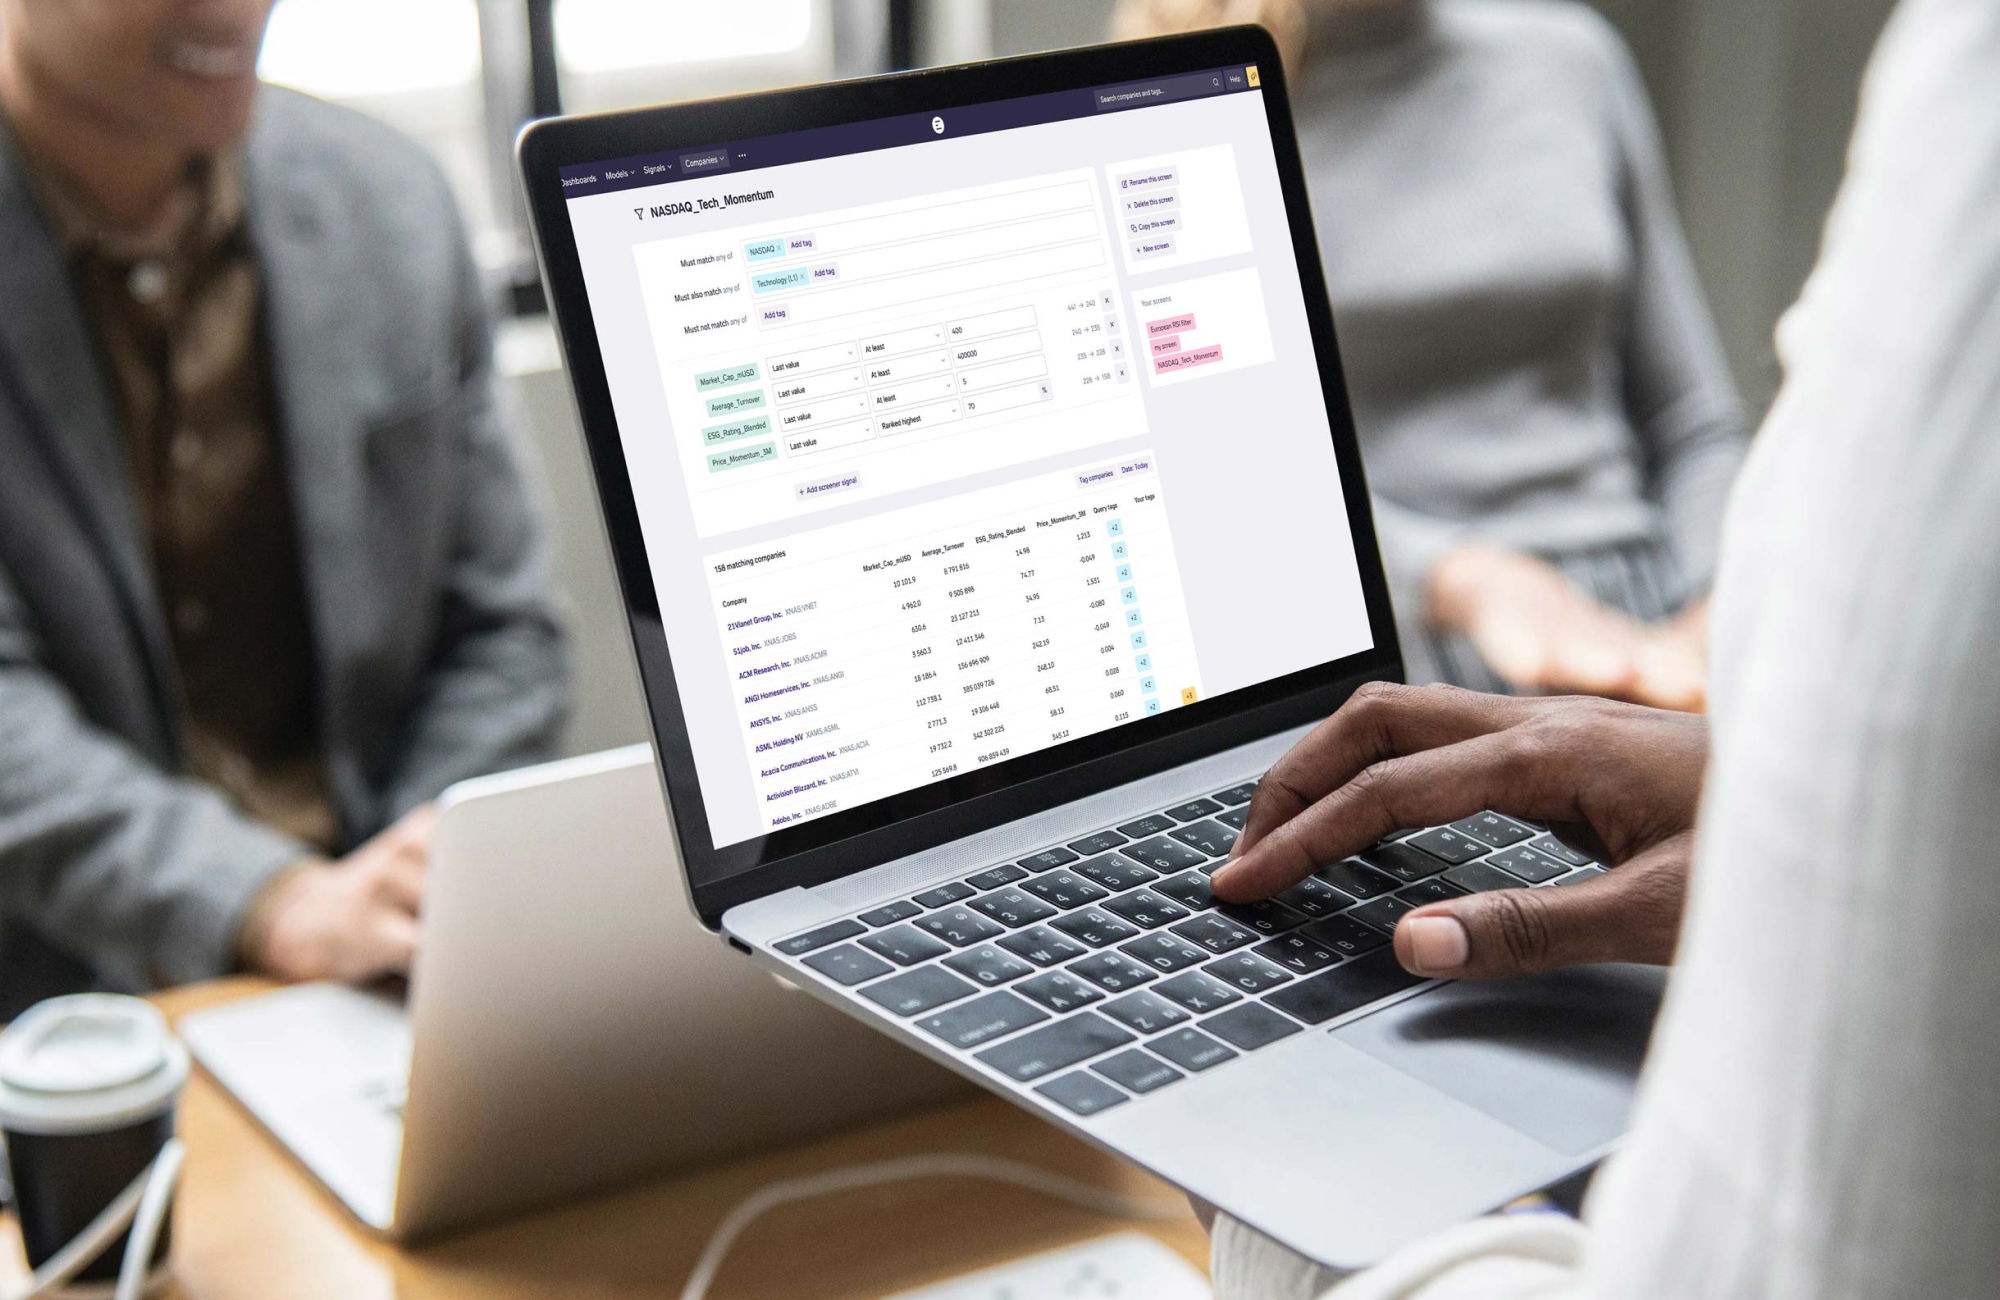 Exabel closes $9M seed round to accelerate new data partnerships, and launches alternative data insights product